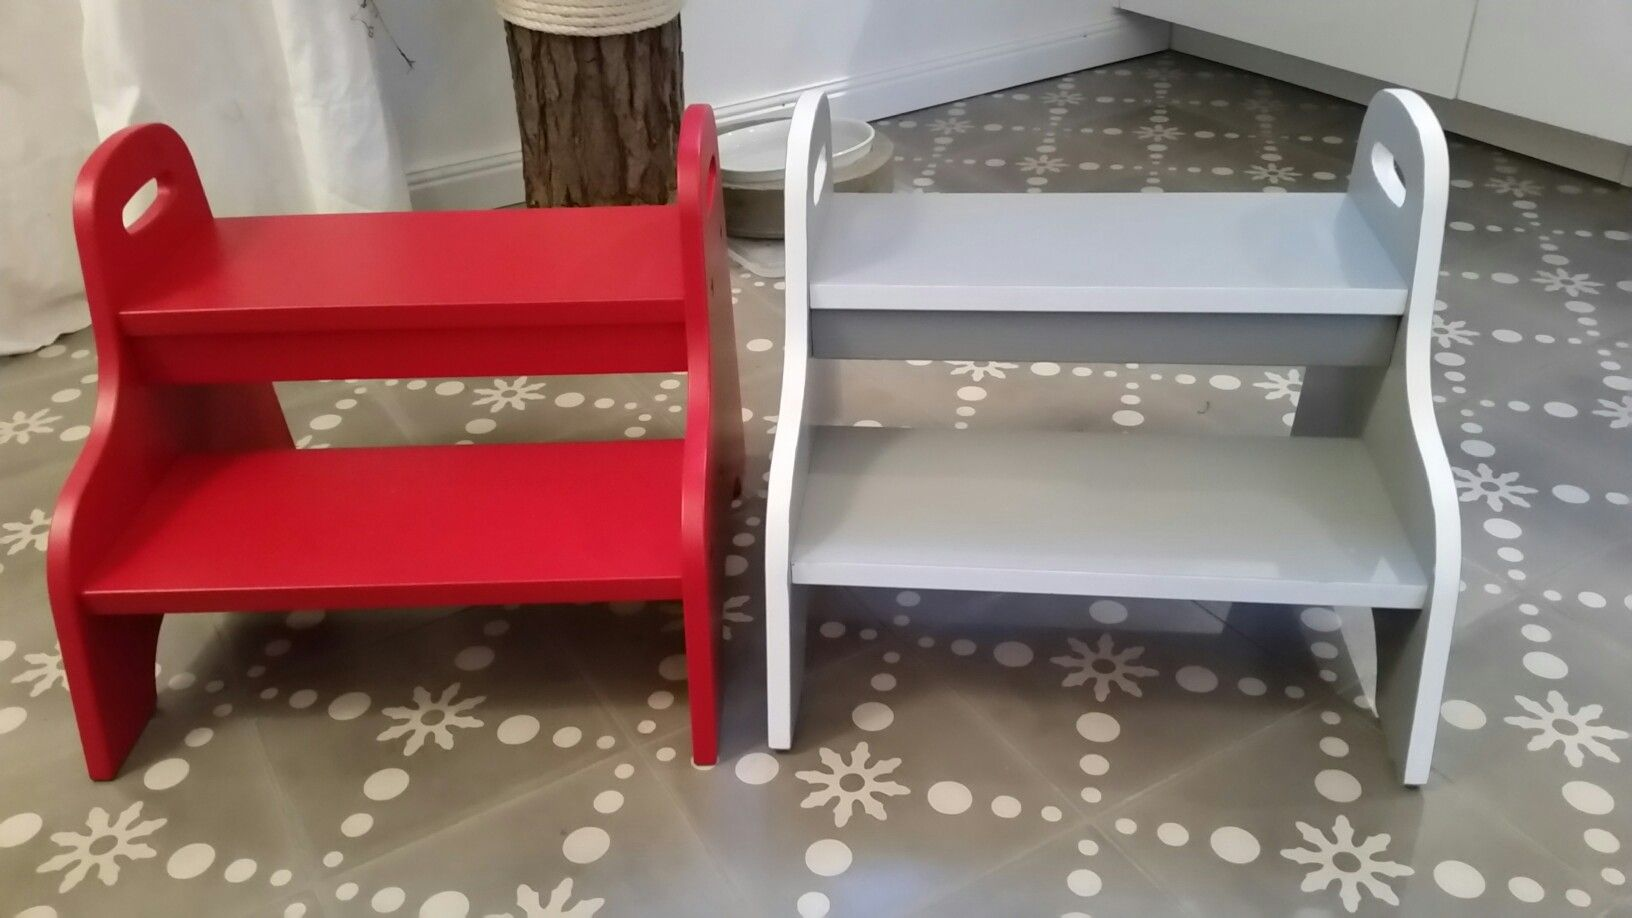 Ikea trogen footstool hack customized to match the color scheme